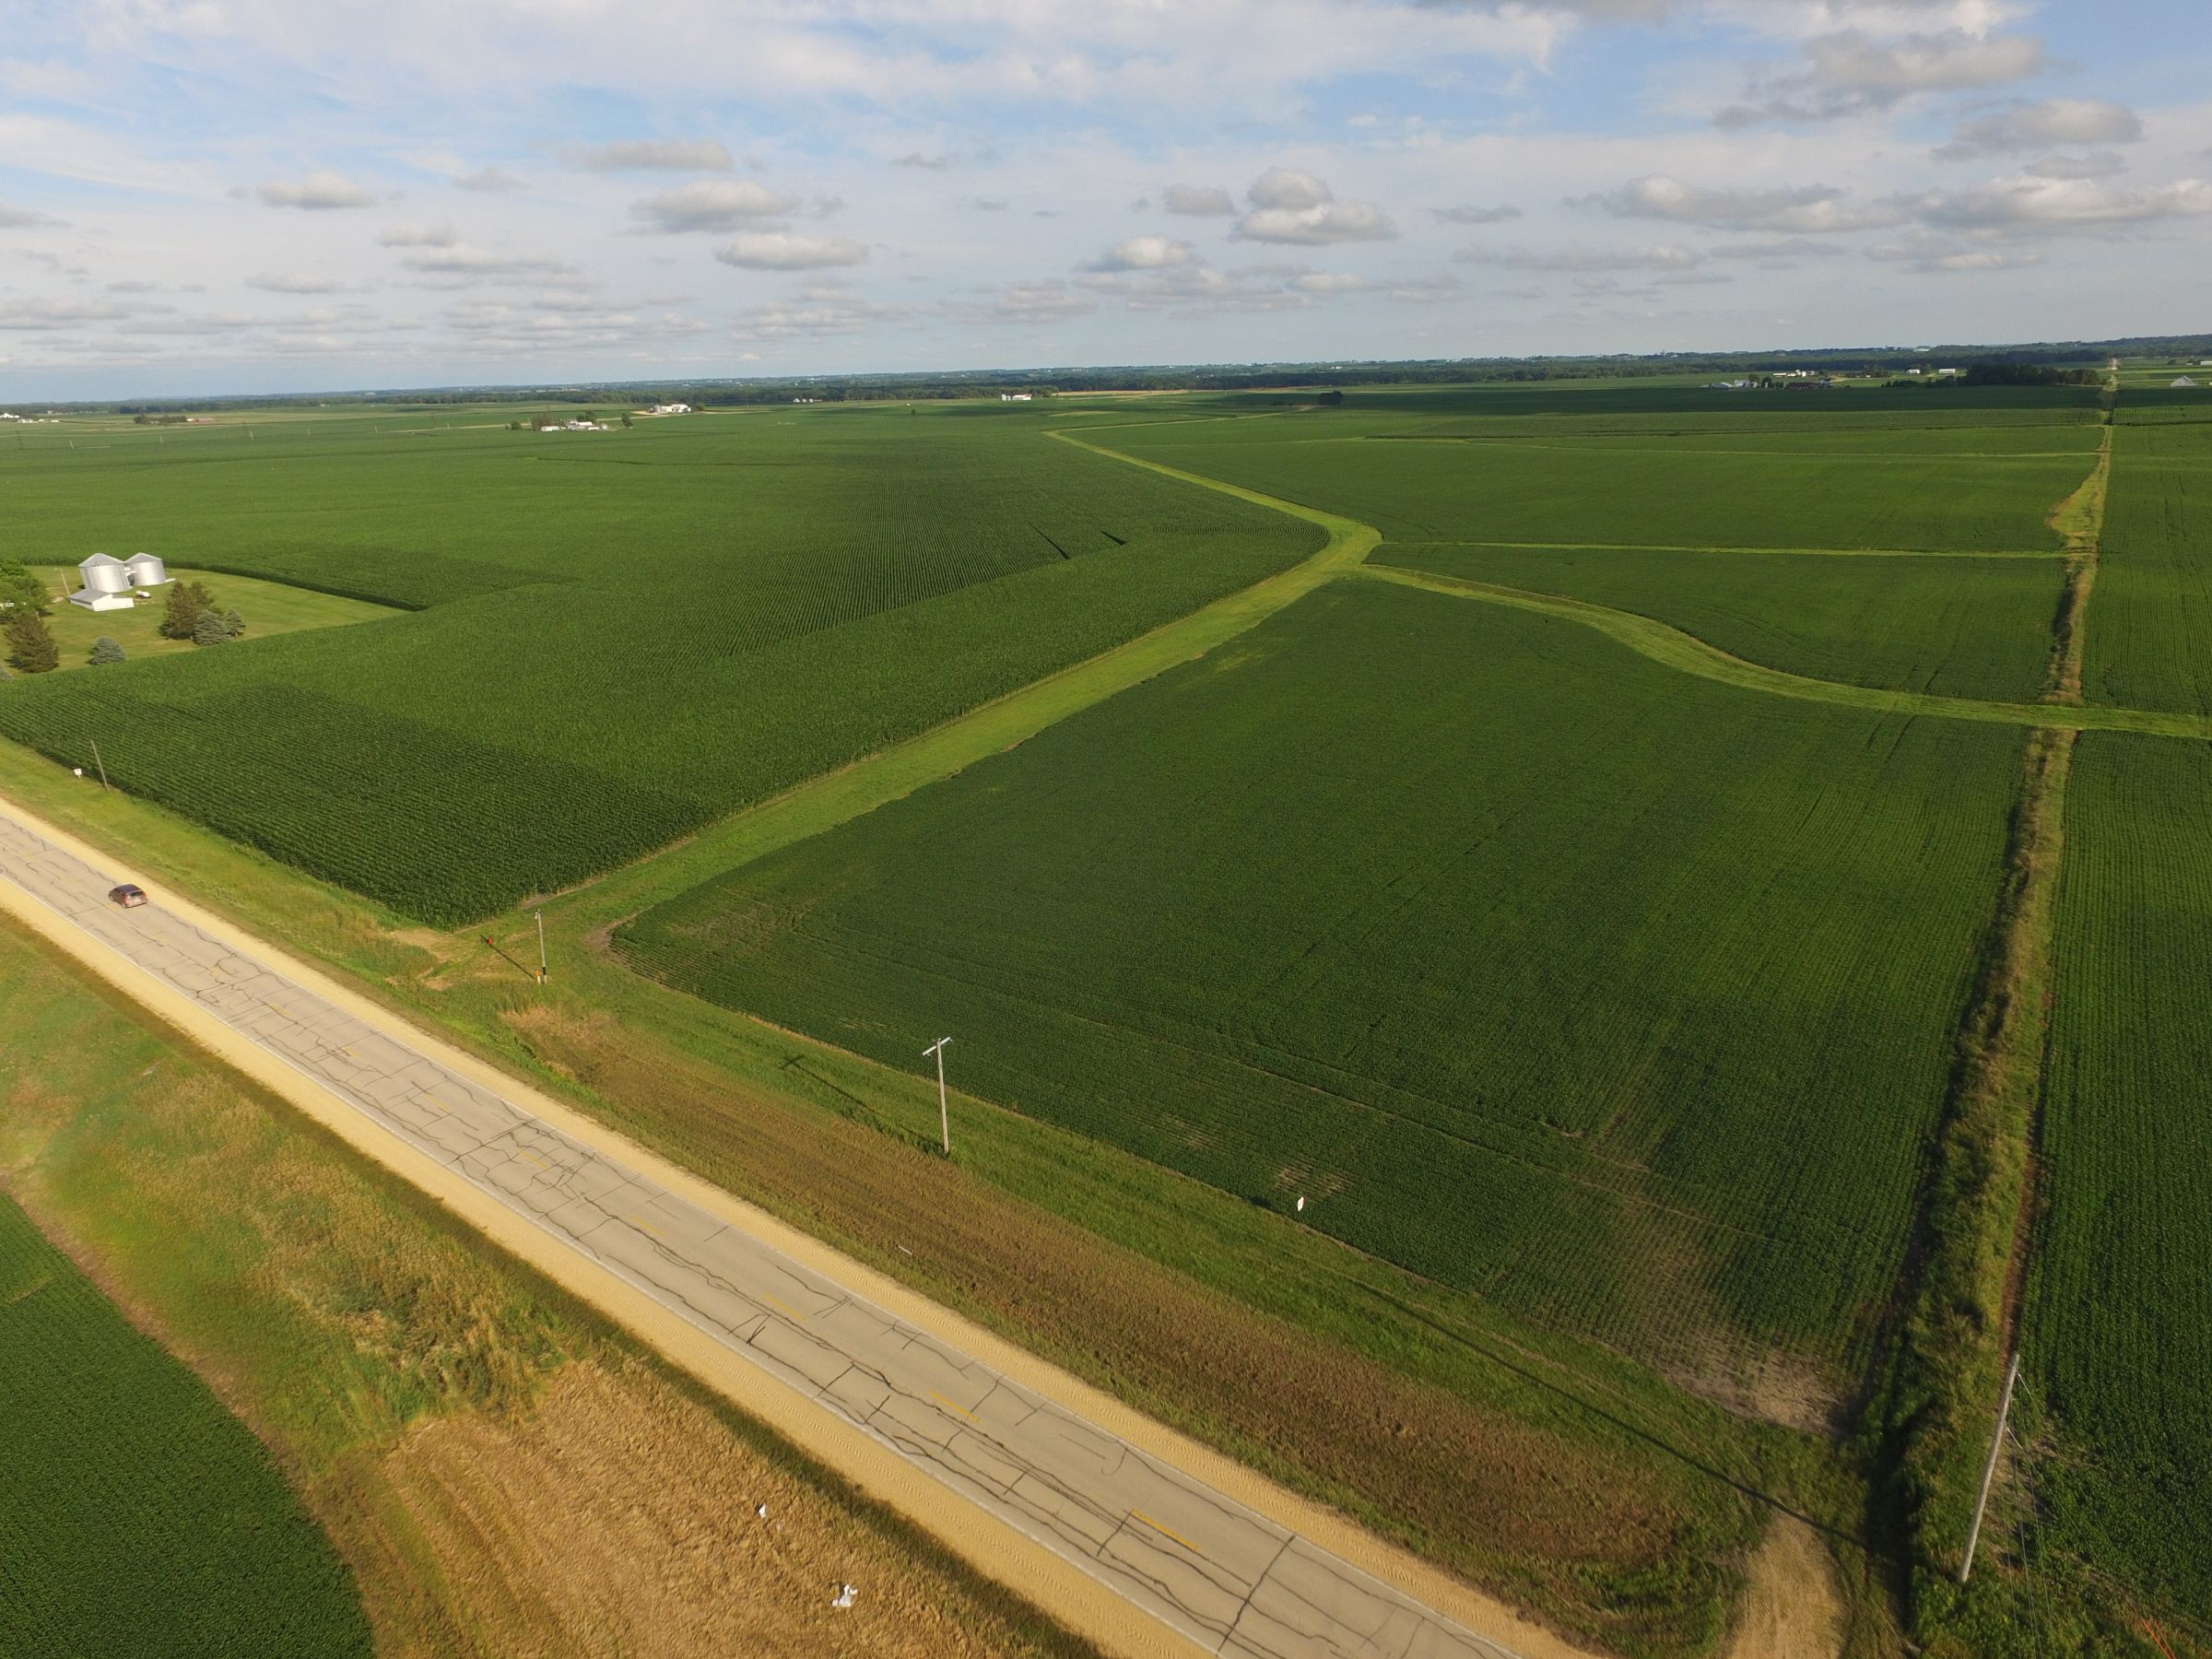 auctions-land-clinton-county-iowa-210-acres-listing-number-15628-3-2021-07-12-143511.JPG